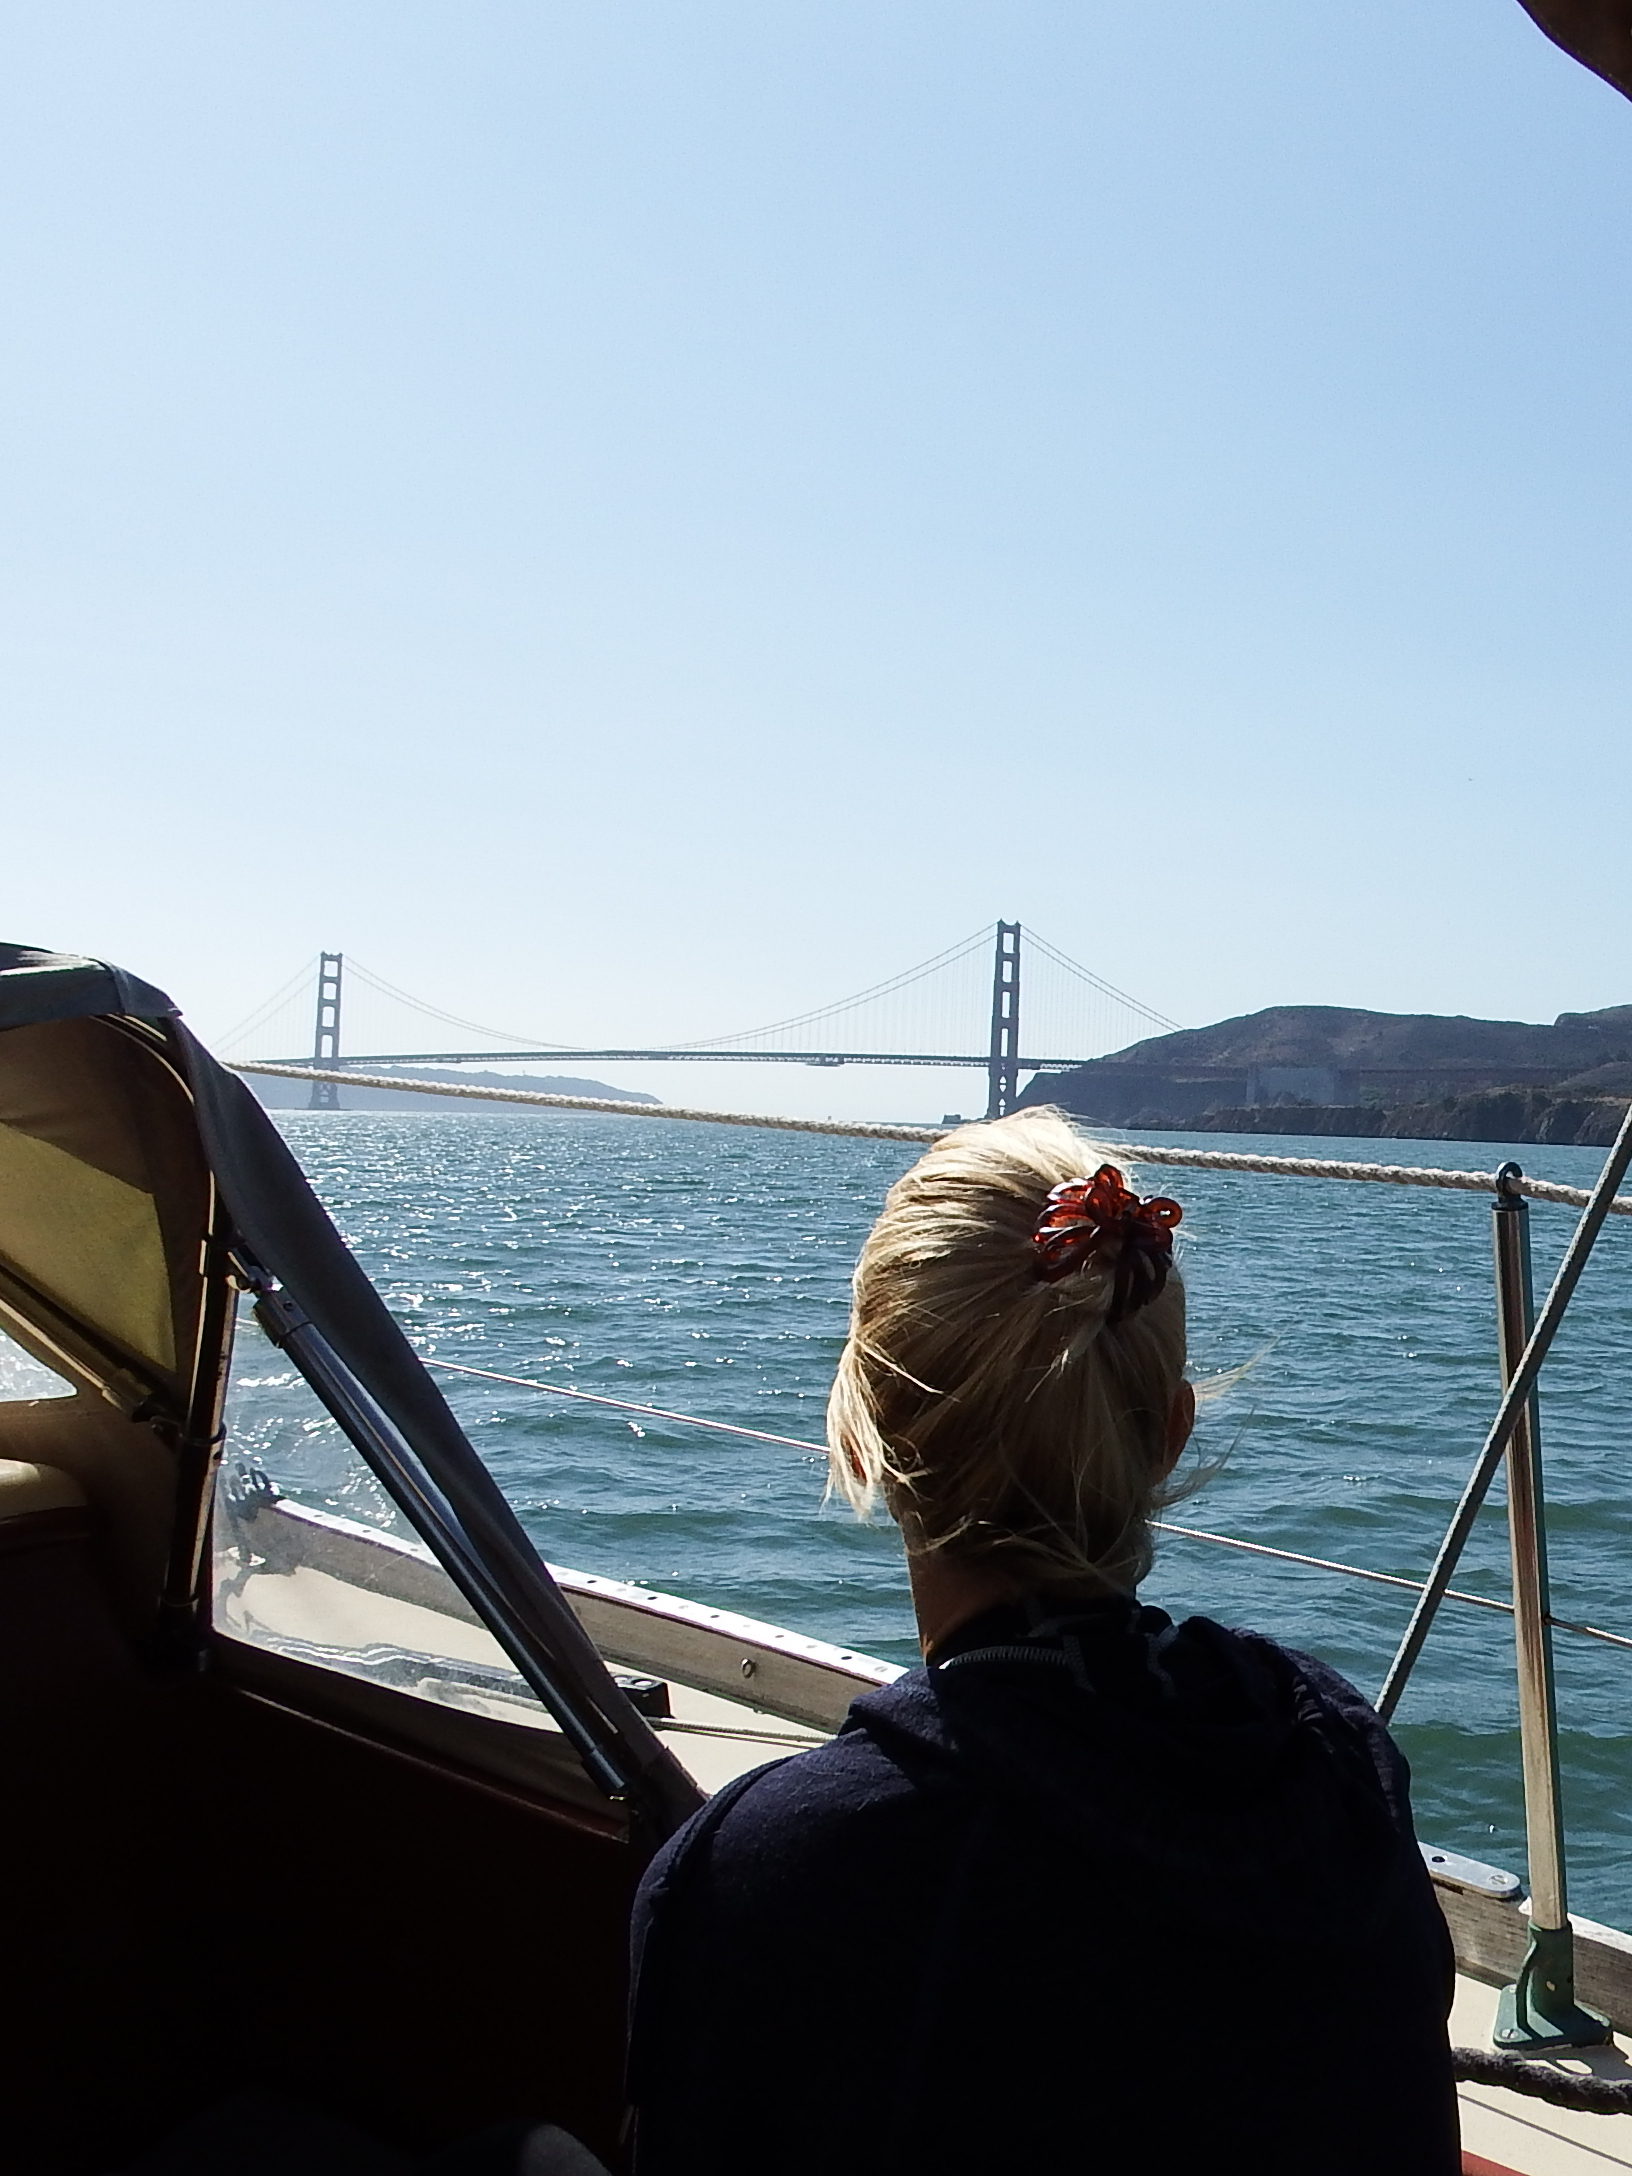 On our way to the Golden Gate!